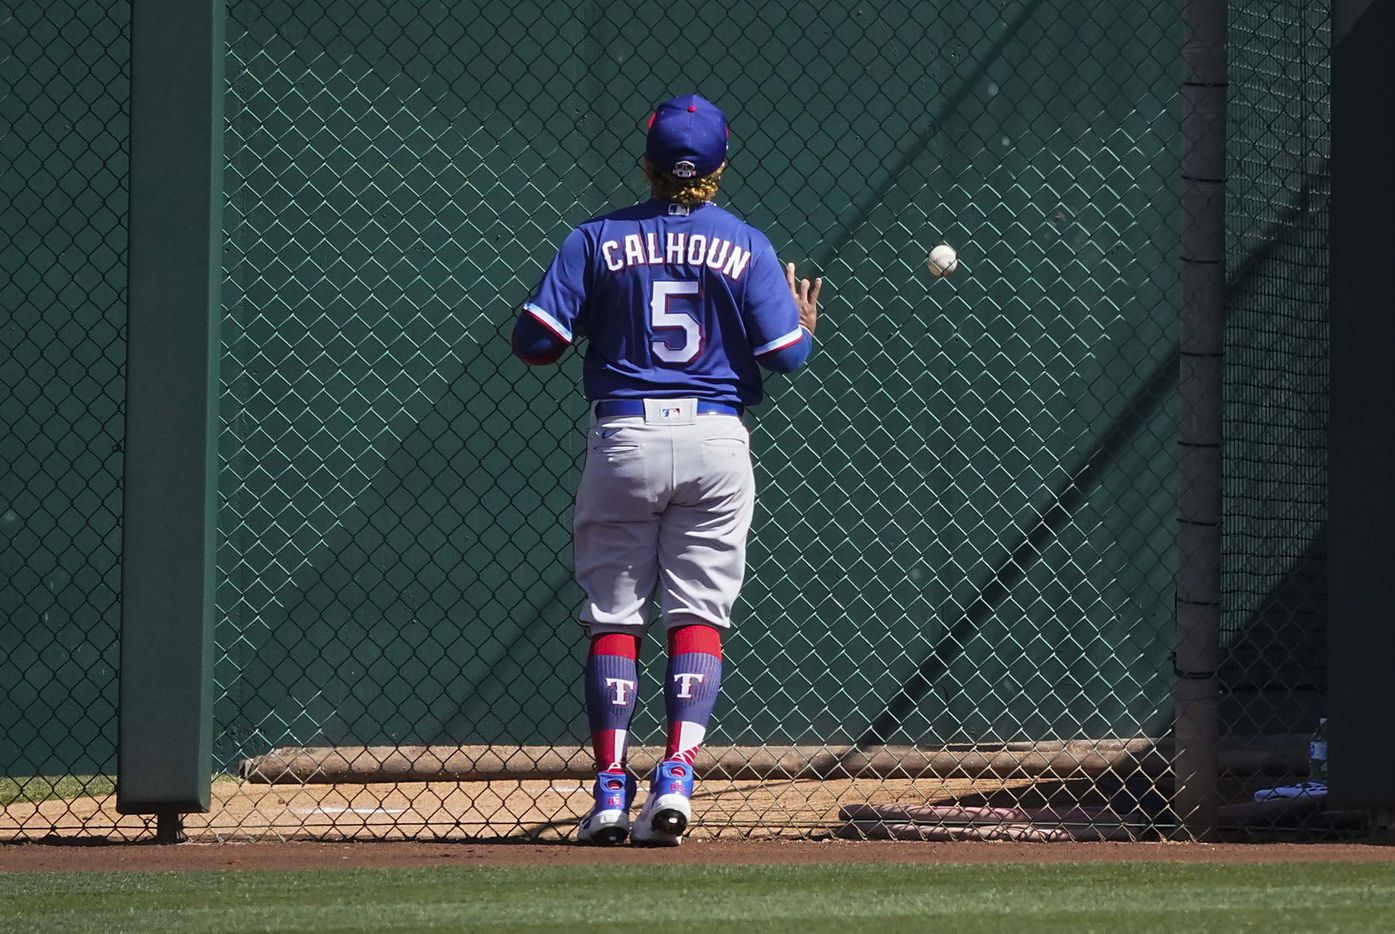 Texas Rangers left fielder Willie Calhoun watches a 3-run home run off the bat of Chicago White Sox designated hitter Andrew Vaughn off of Rangers pitcher Kohei Arihara land in the bullpen during the first inning of a spring training game at Camelback Ranch on Tuesday, March 2, 2021, in Phoenix, Ariz.